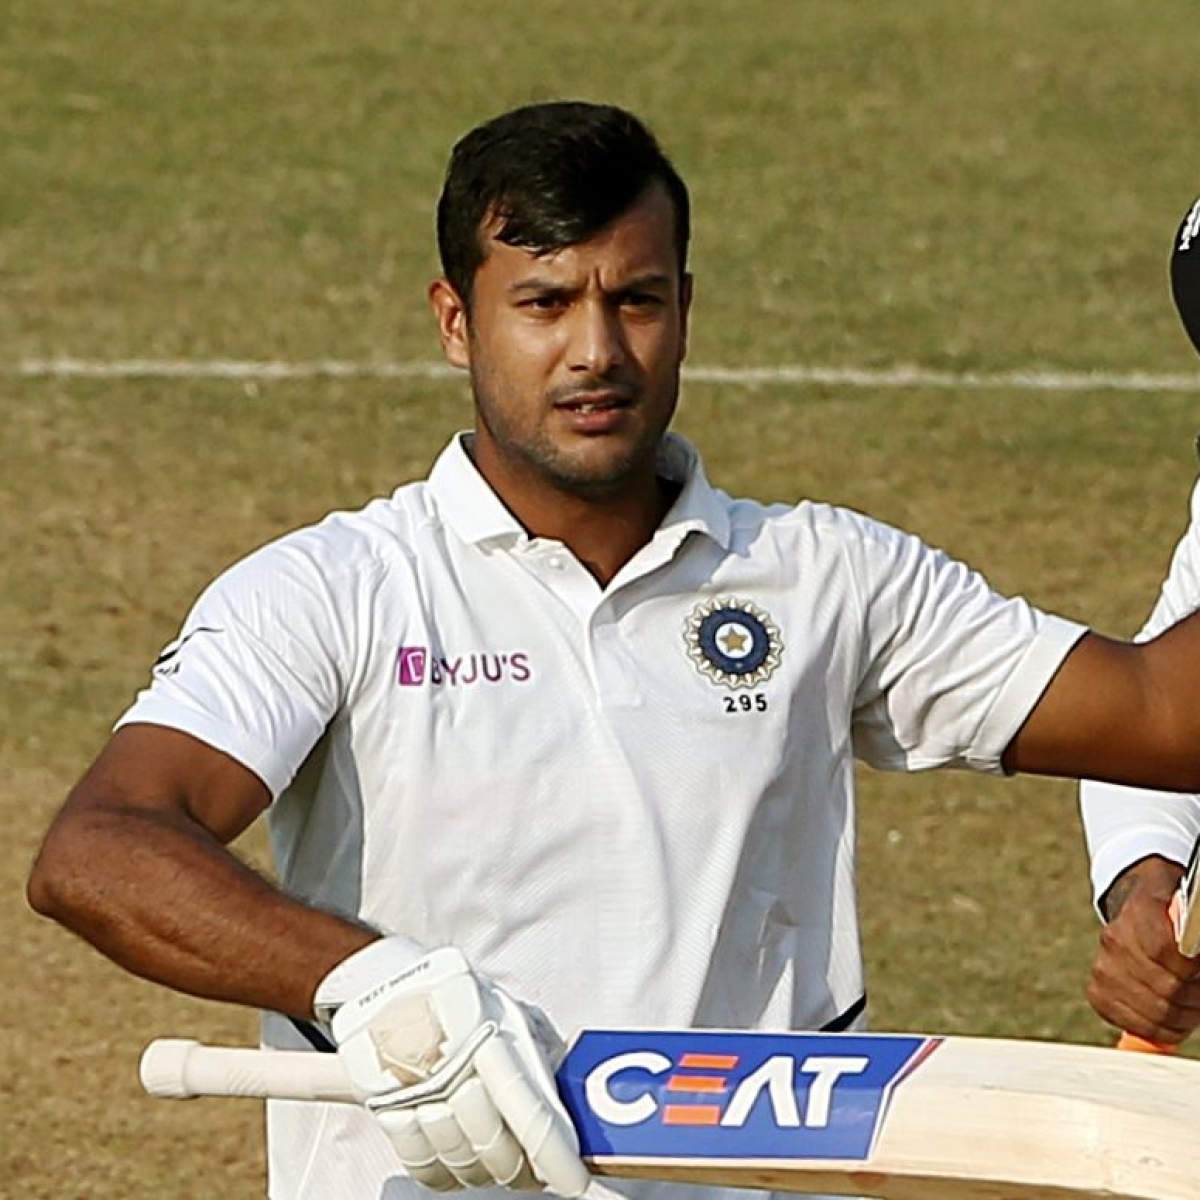 Mayank Agarwal birthday special: The talented young gun who is yet to cement his place